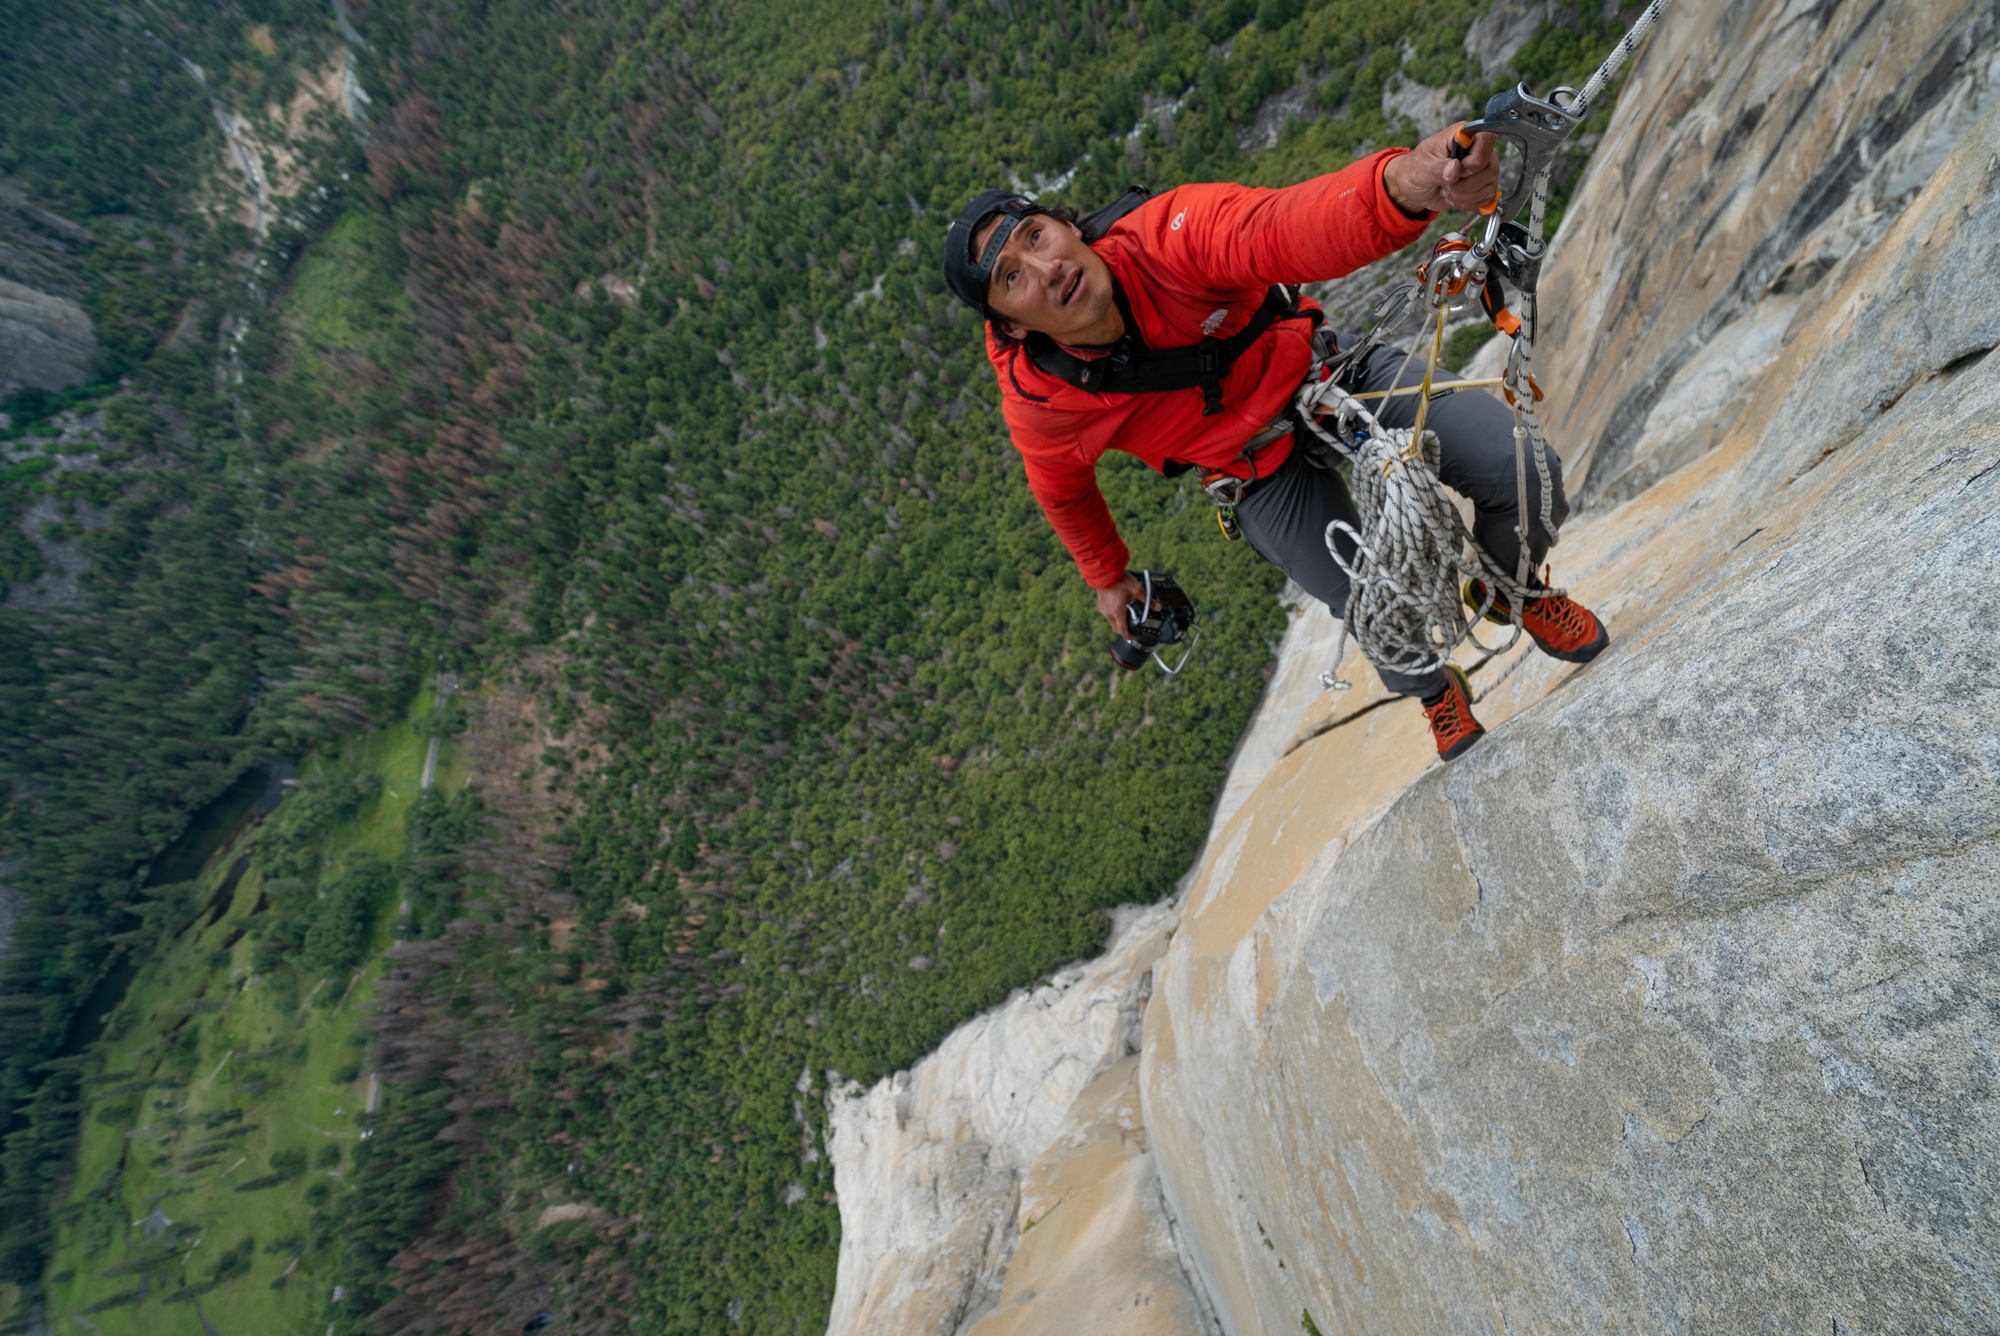 Jimmy Chin moving into position 2000ft up the wall to shoot the Enduro Corner on the upper part of Freerider. El Capitan. (National Geographic/Cheyne Lempe)